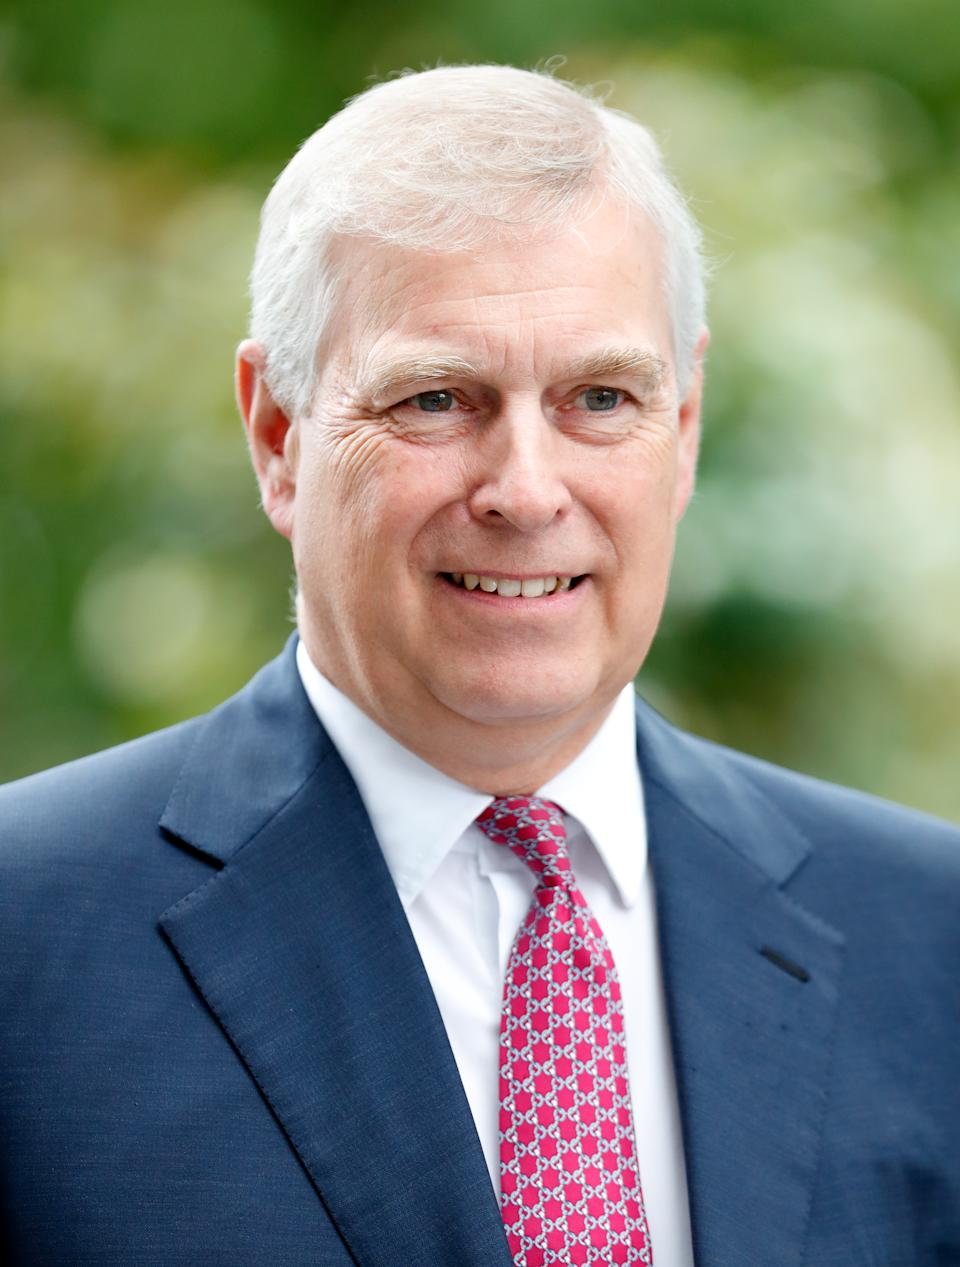 "The Duke of York made headlines in 2020 for all of the wrong reasons. Following his fumbling interview with the BBC regarding his relationship with convicted pedophile and sex-trafficker, Jeffrey Epstein, Buckingham Palace announced in May that <a href=""https://ca.search.yahoo.com/search?p=PrinceAndrew&fr=fp-tts&fr2"" data-ylk=""slk:Prince Andrew"" class=""link rapid-noclick-resp"">Prince Andrew</a> would be permanently retiring from public duties."